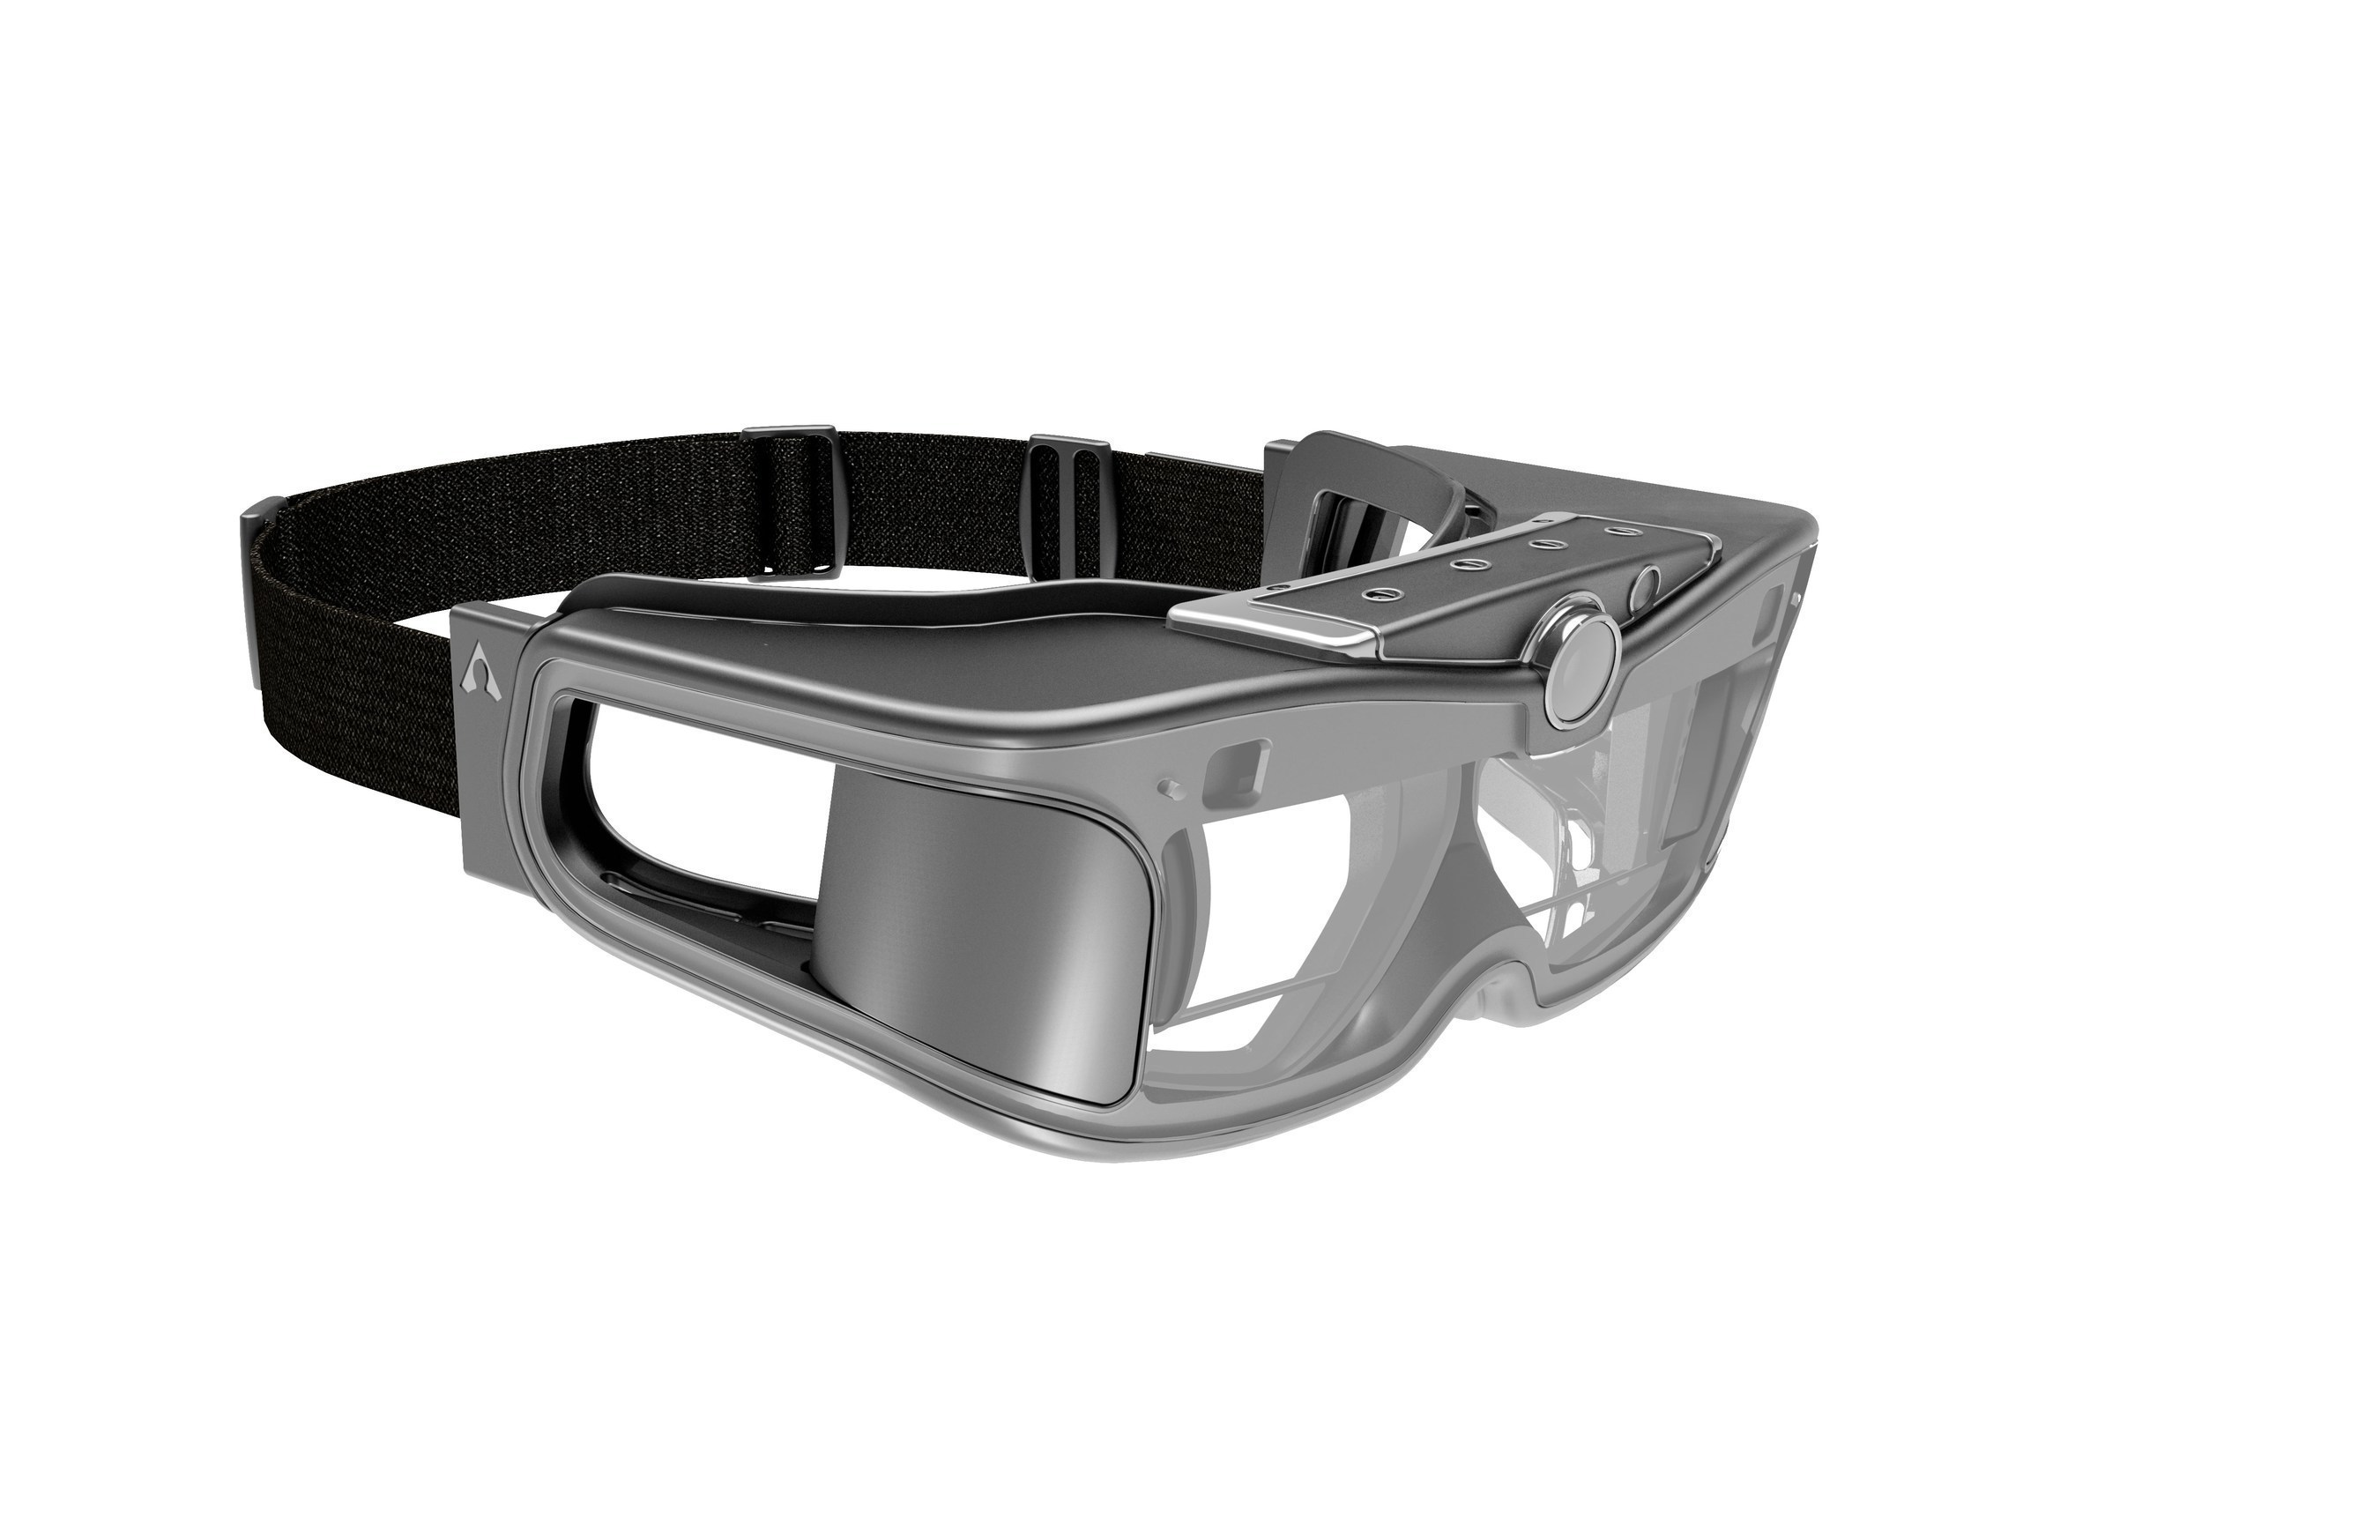 Atheer AiR(TM), the world's most interactive 3D smart glasses platform for deskless professionals.